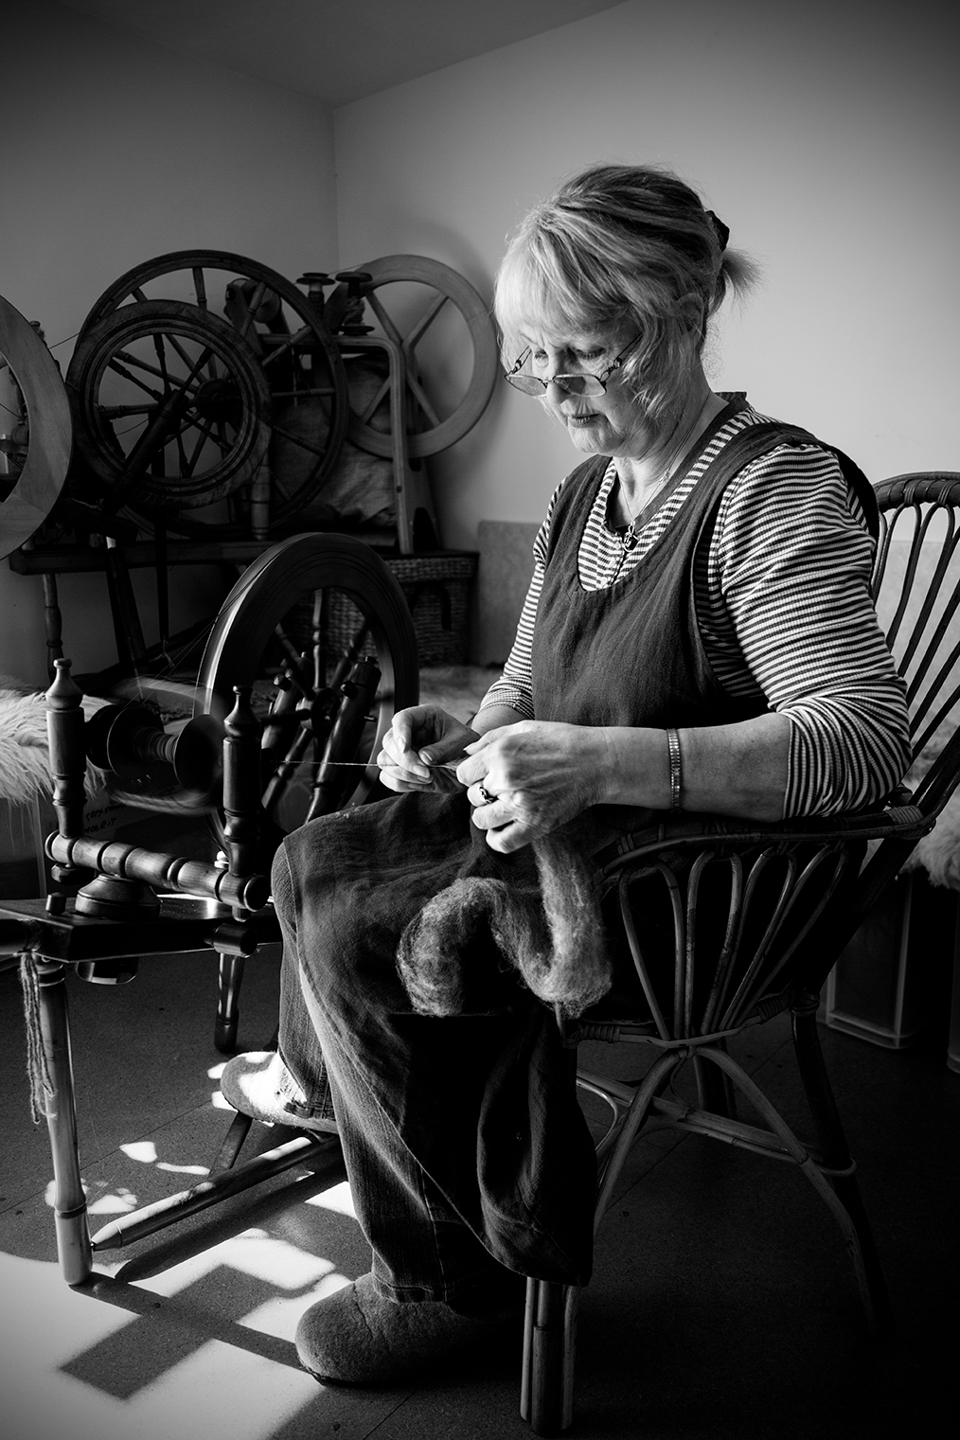 Elizabeth Johnston hand-spinning yarn on a beautiful old Shetland wheel